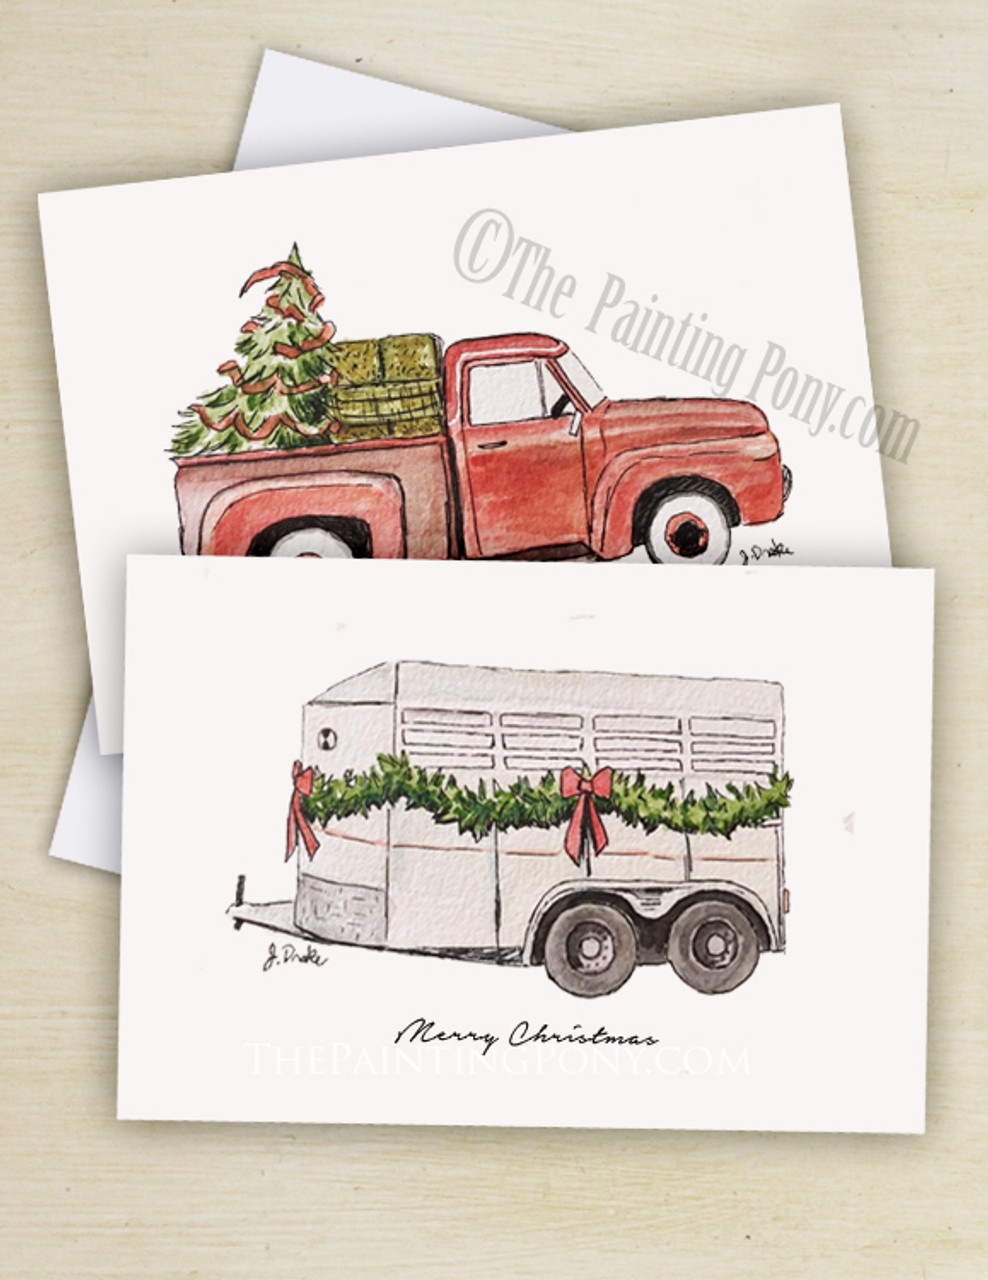 Old Red Farm Truck Or Horse Trailer Country Christmas Cards 10 Pk The Painting Pony